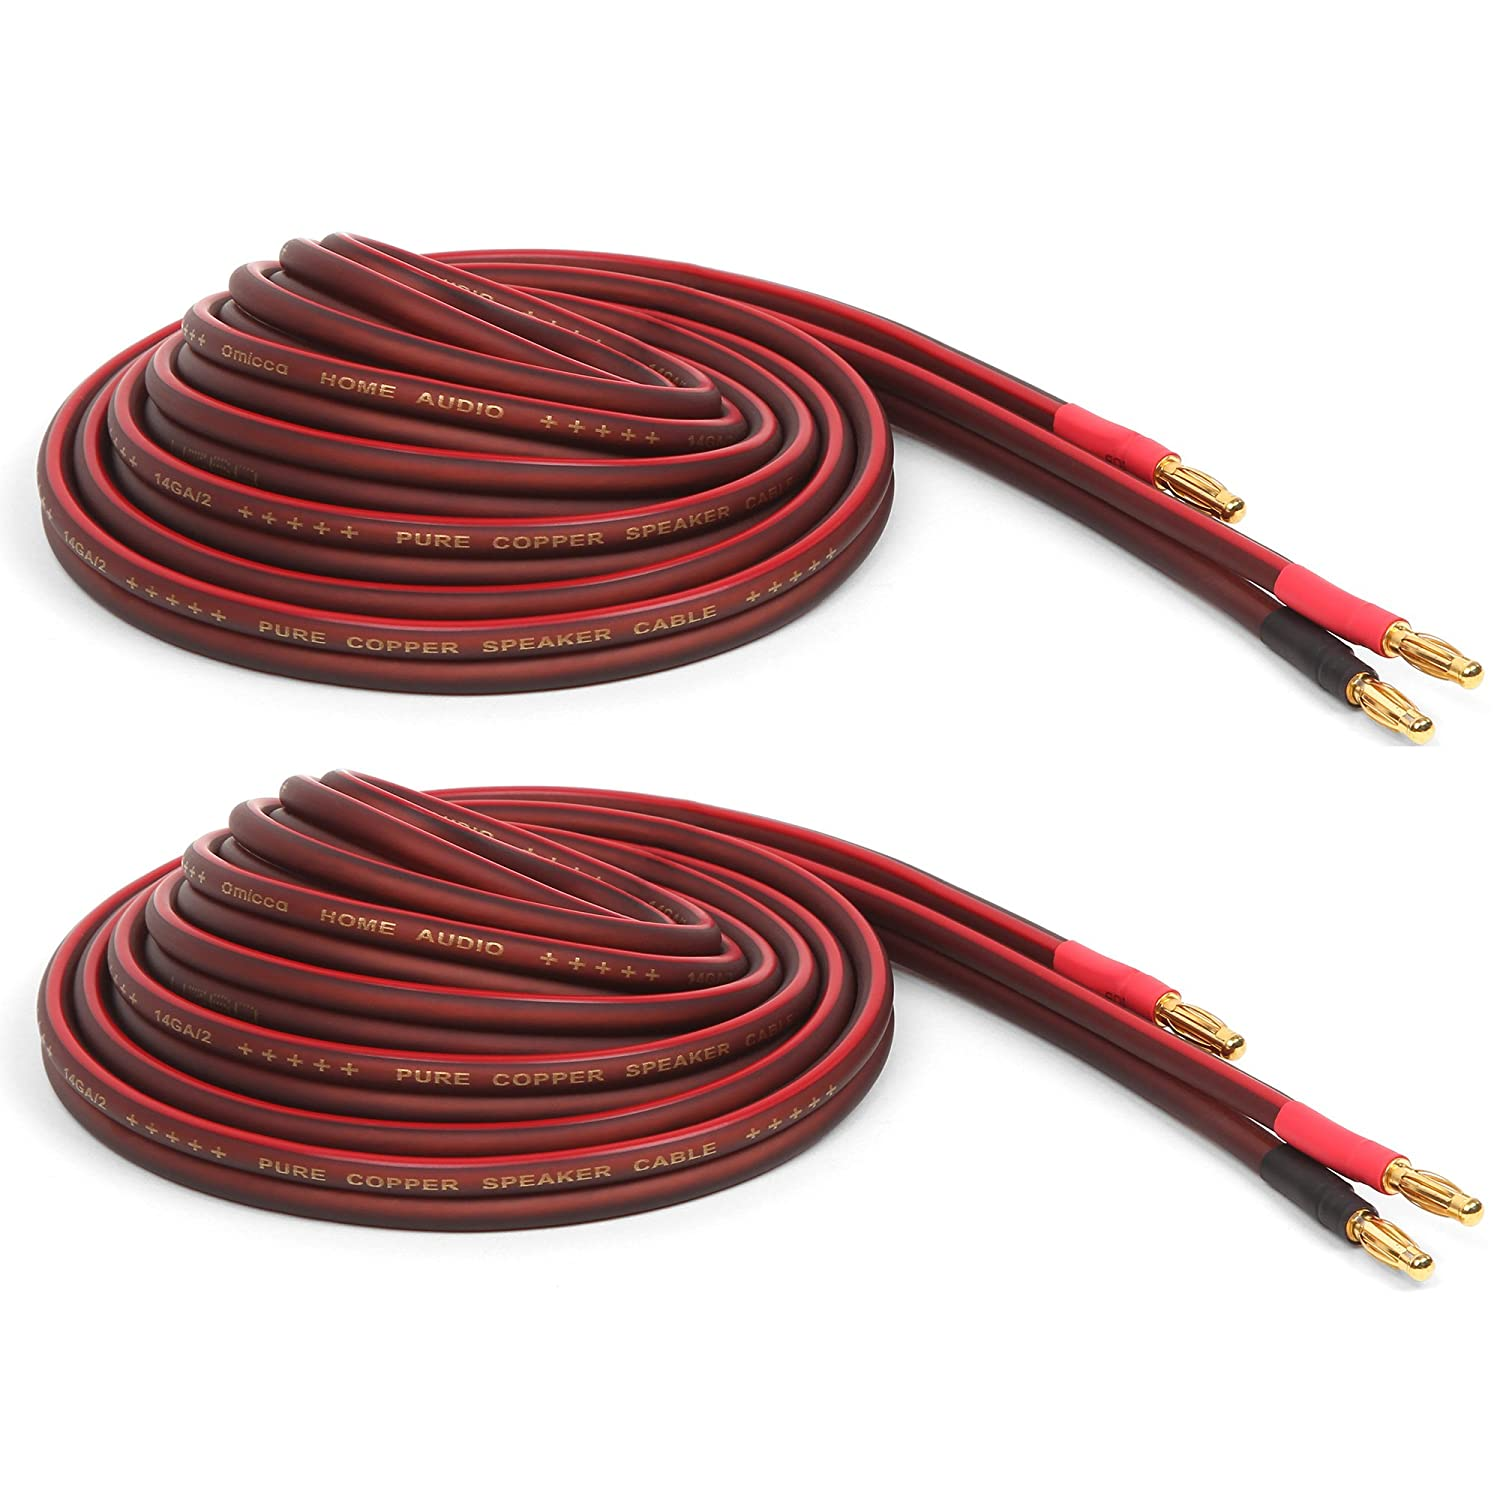 Micca Pure Copper Speaker Wire with Gold Plated Banana Plugs, 14AWG, 6 Feet (2 Meter), Pair SW-14-2M-P